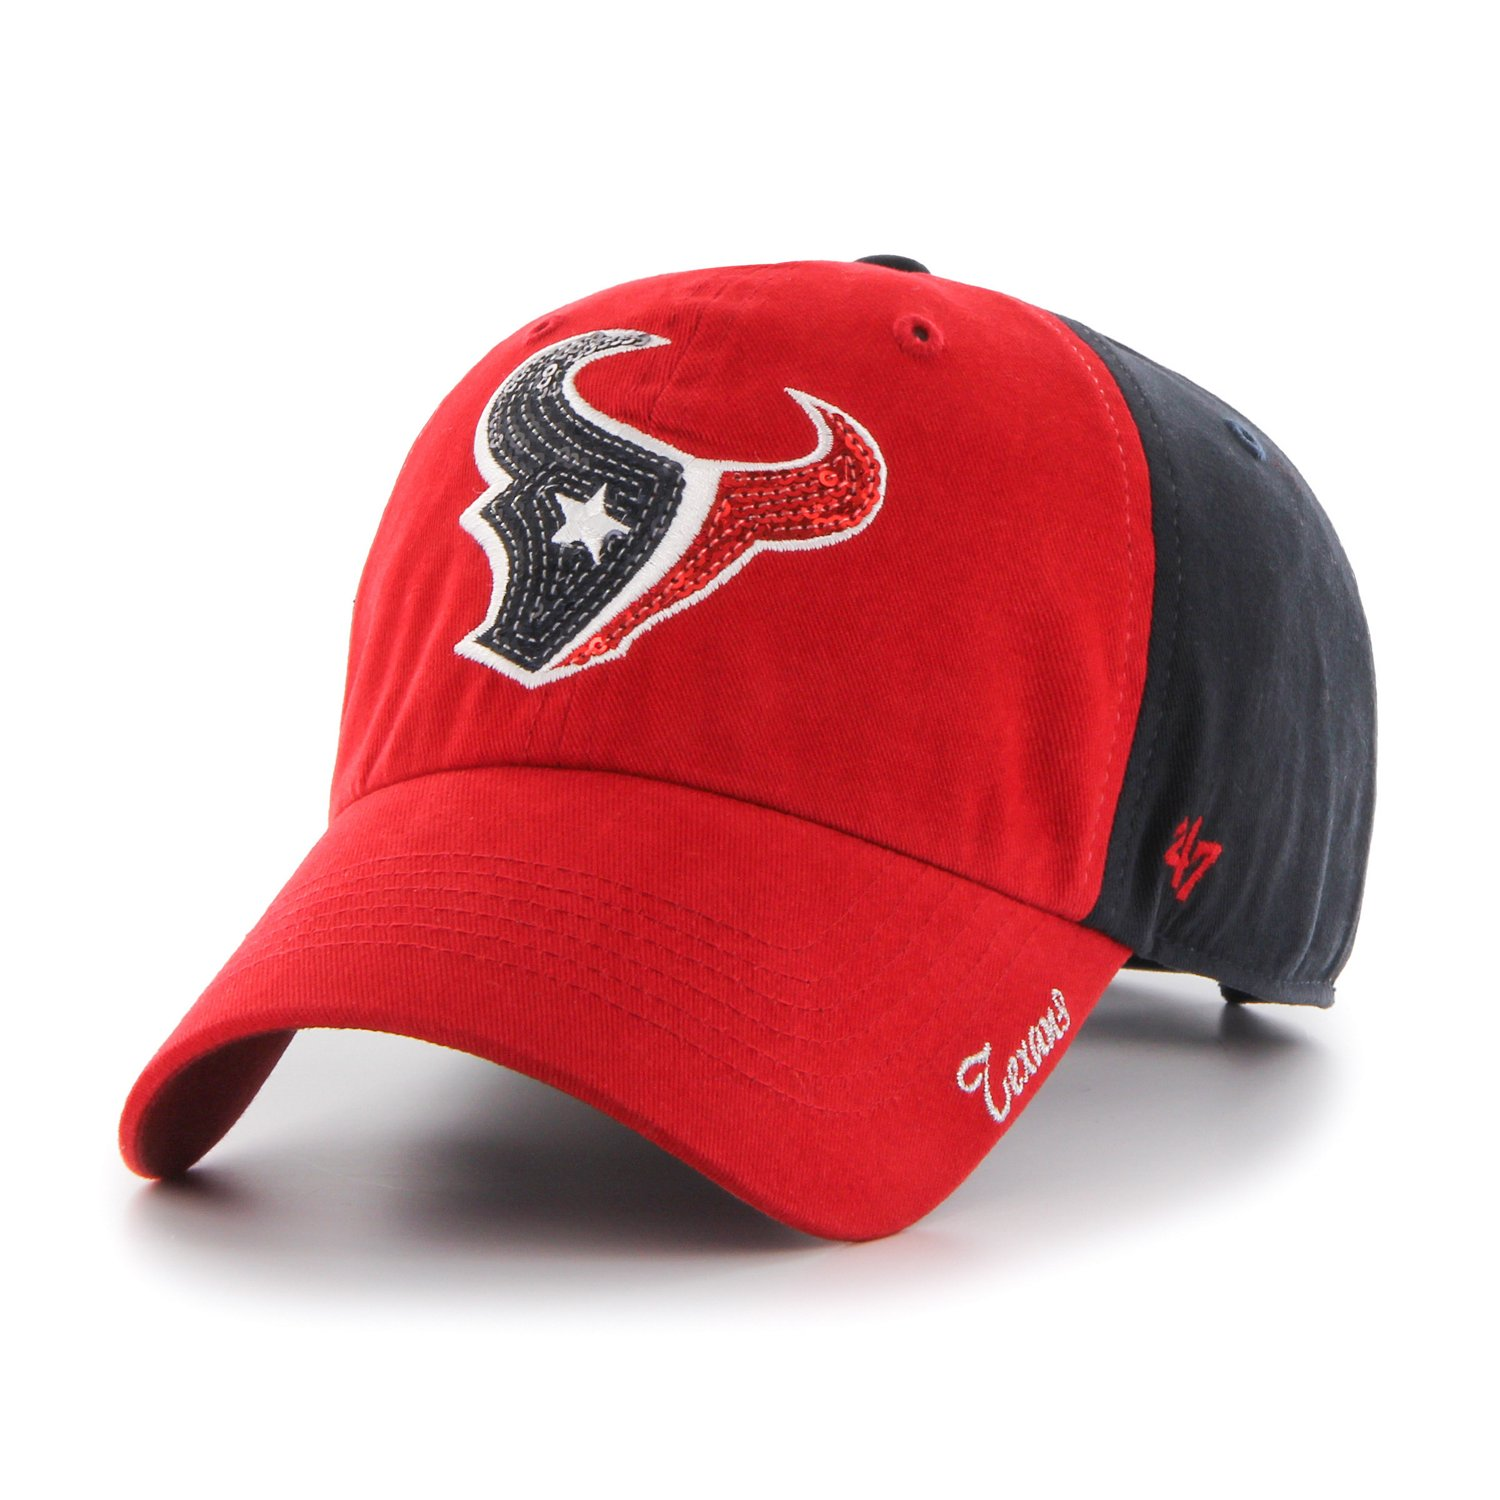 cheaper 26814 e235a germany official store houston texans red hat 7618b d544e 469fa 17379  new  zealand 47 womens houston texans sparkle 2 tone clean up cap academy 97599  0a6f2